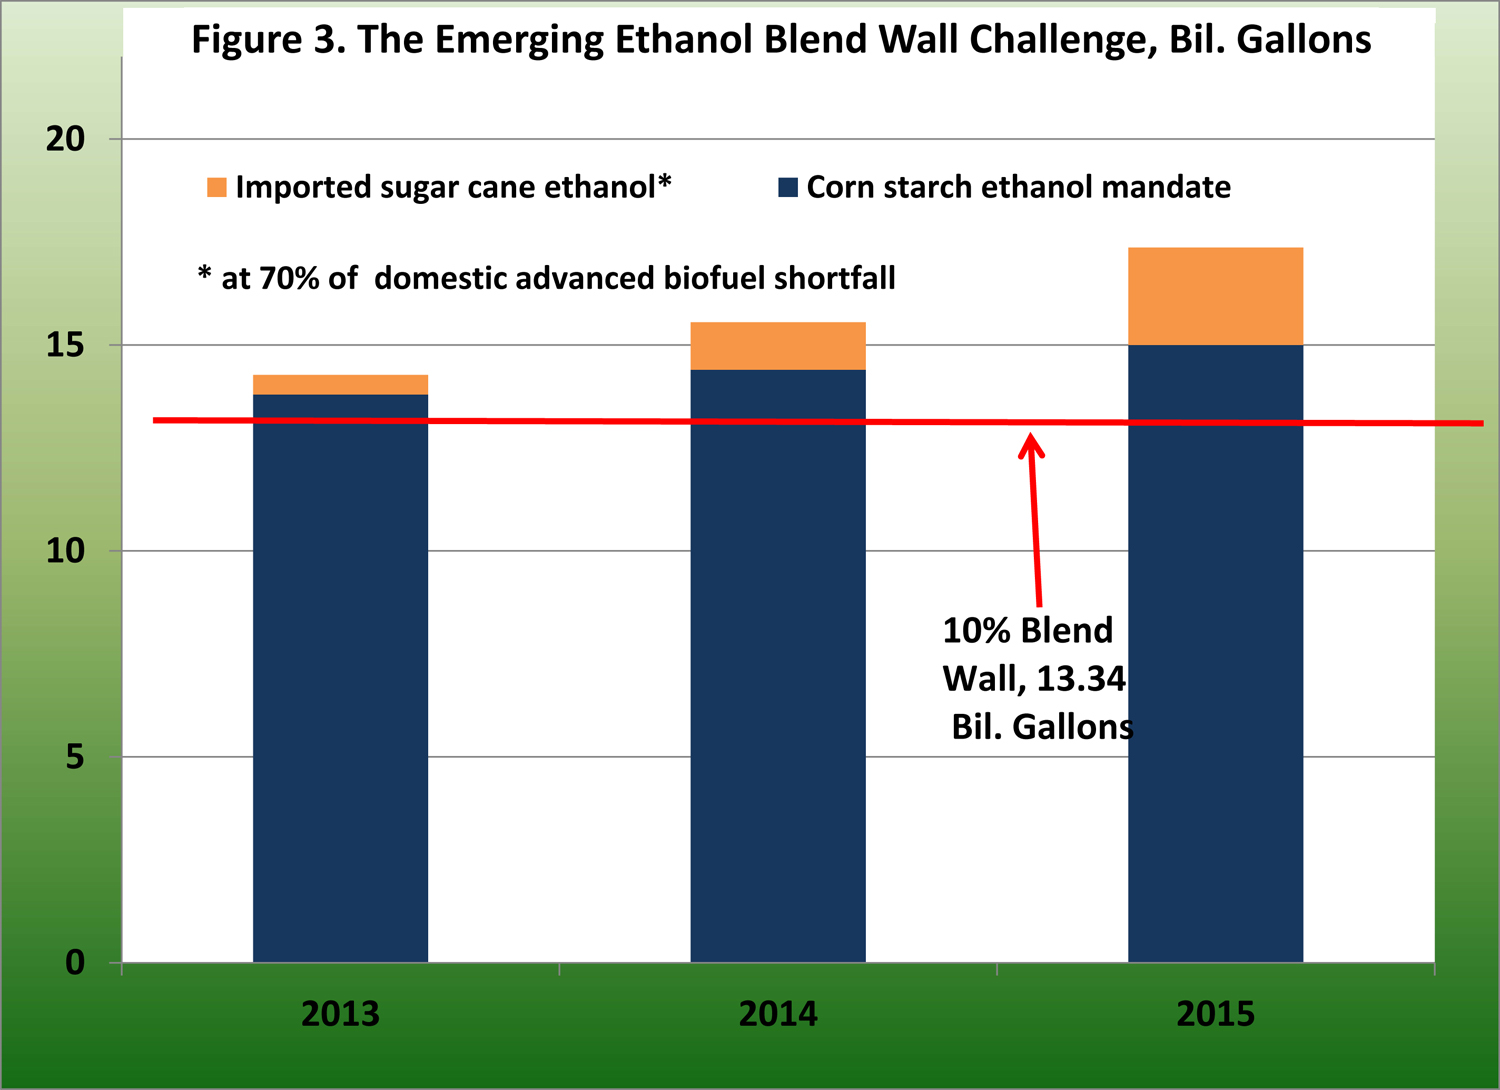 The Emerging Ethanol Blend Wall Challenge